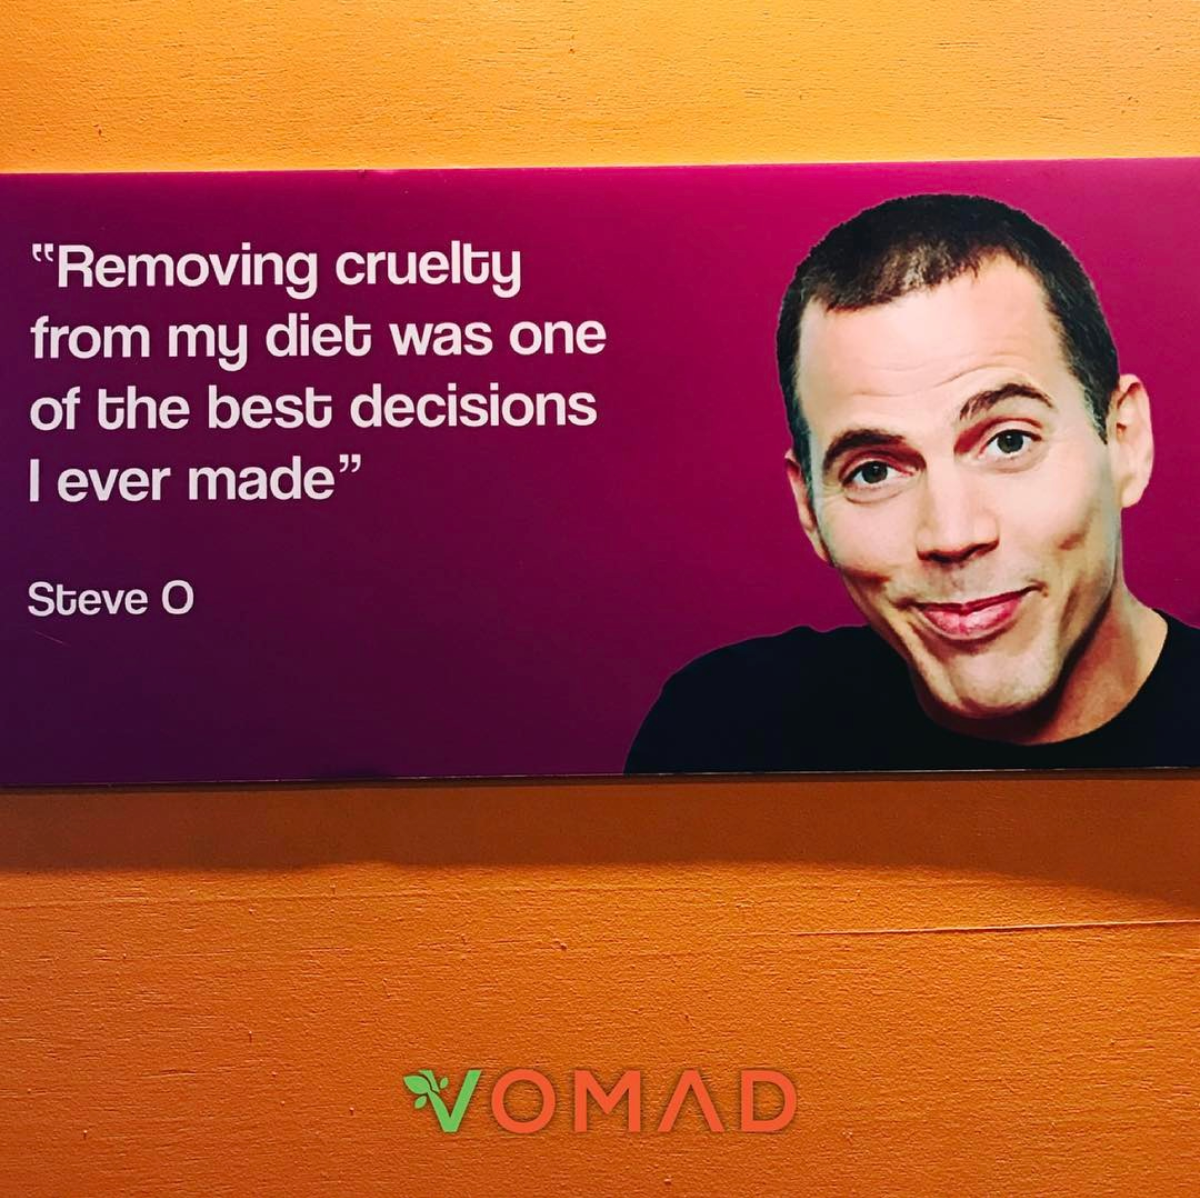 Steve-O went vegan! Taken inside Vegan Heaven 2 in Chiang Mai, Thailand - VomadLife.com